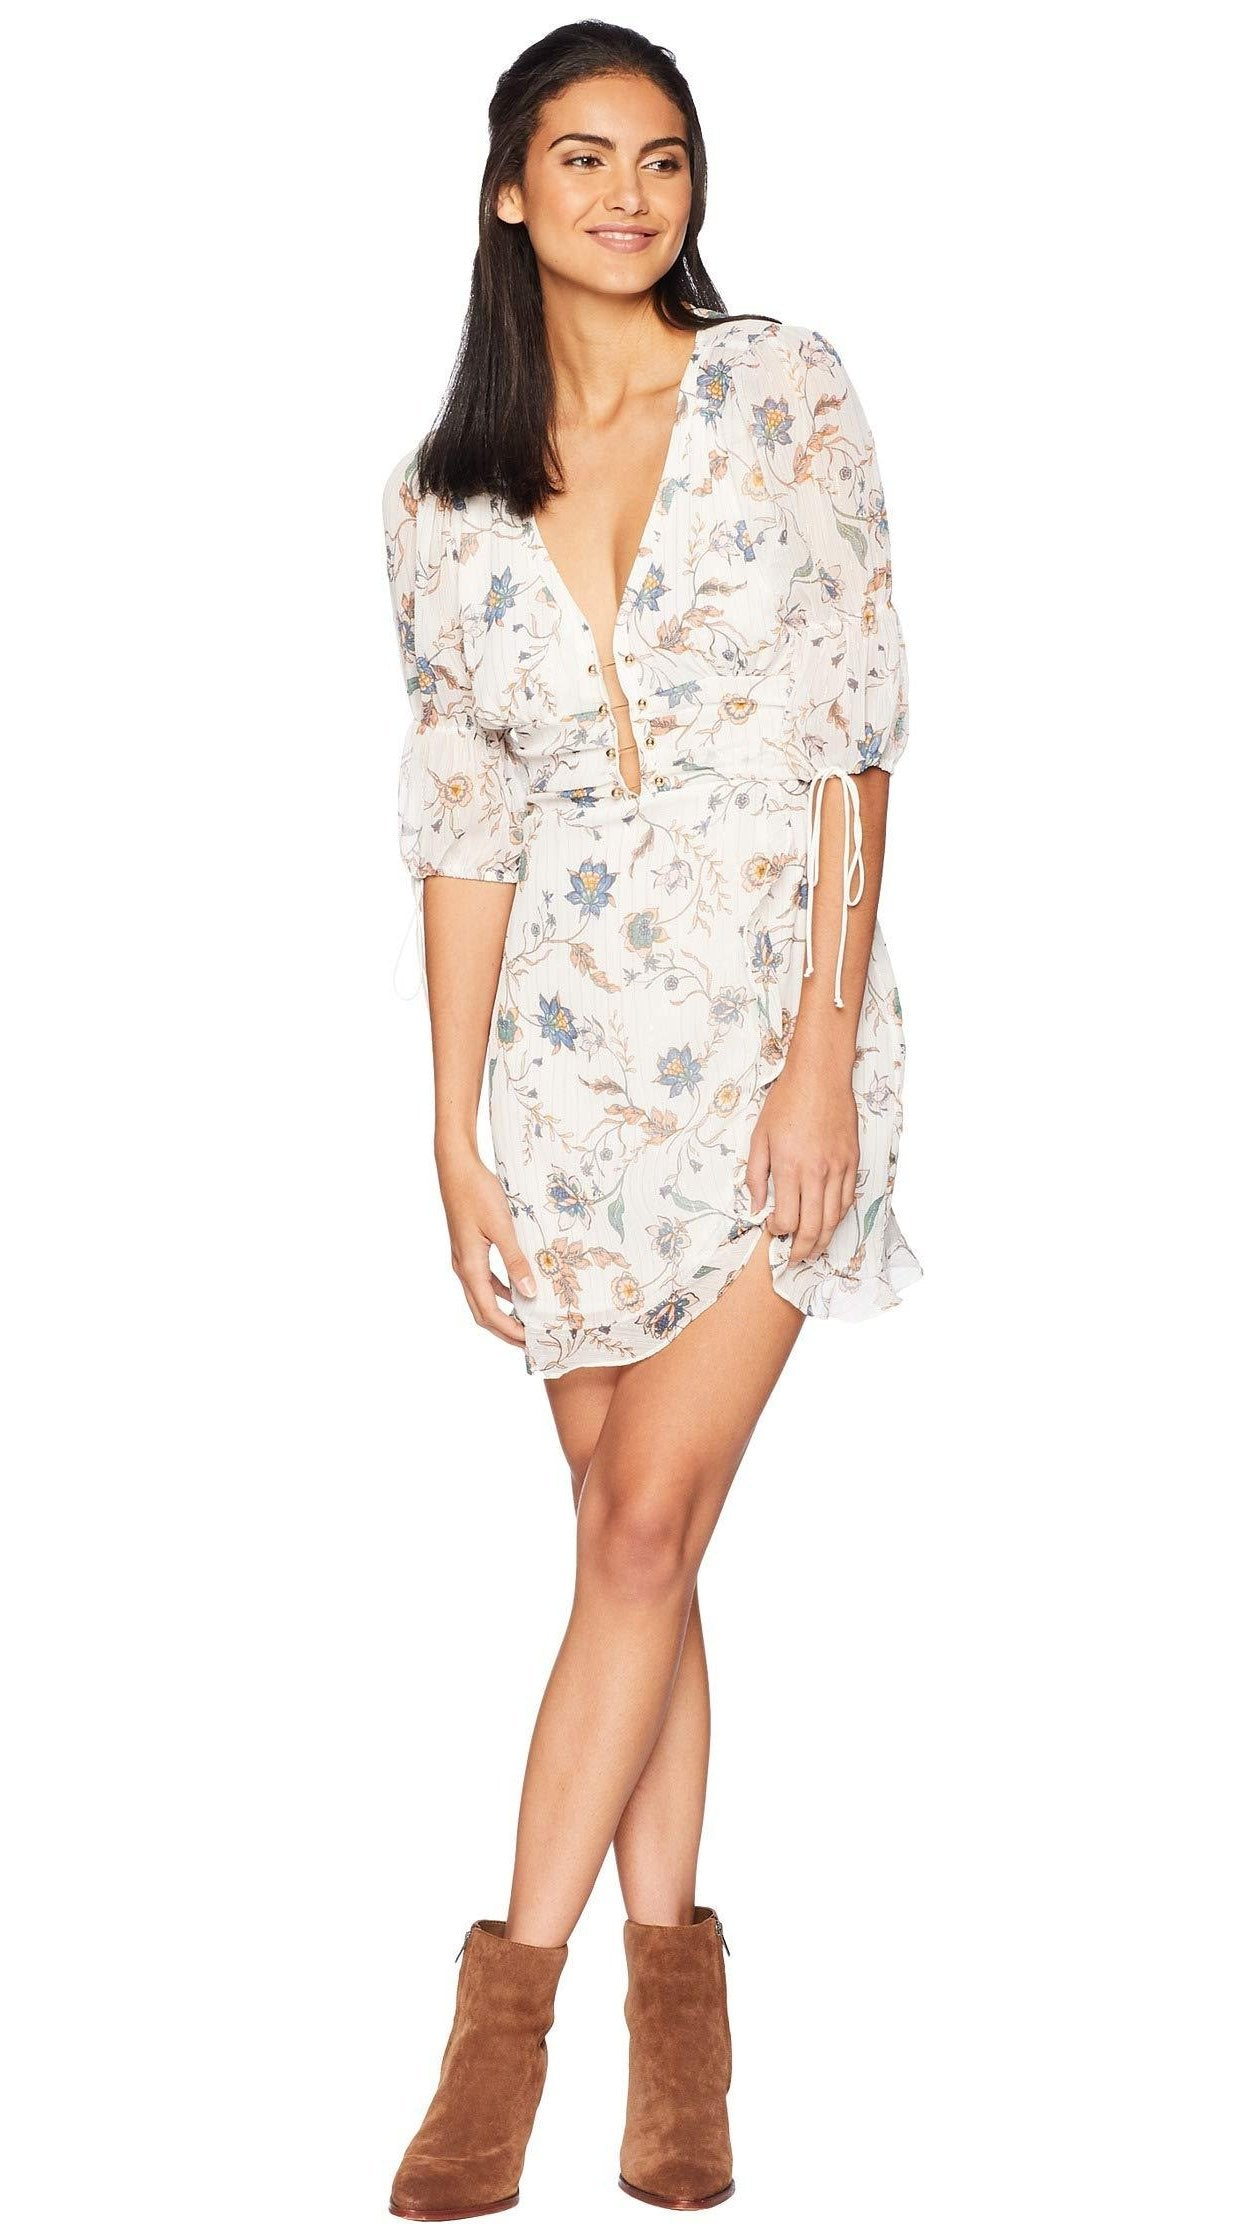 967c1868a32 For Love and Lemons Elyse Flirty Mini Dress – Bliss Bandits